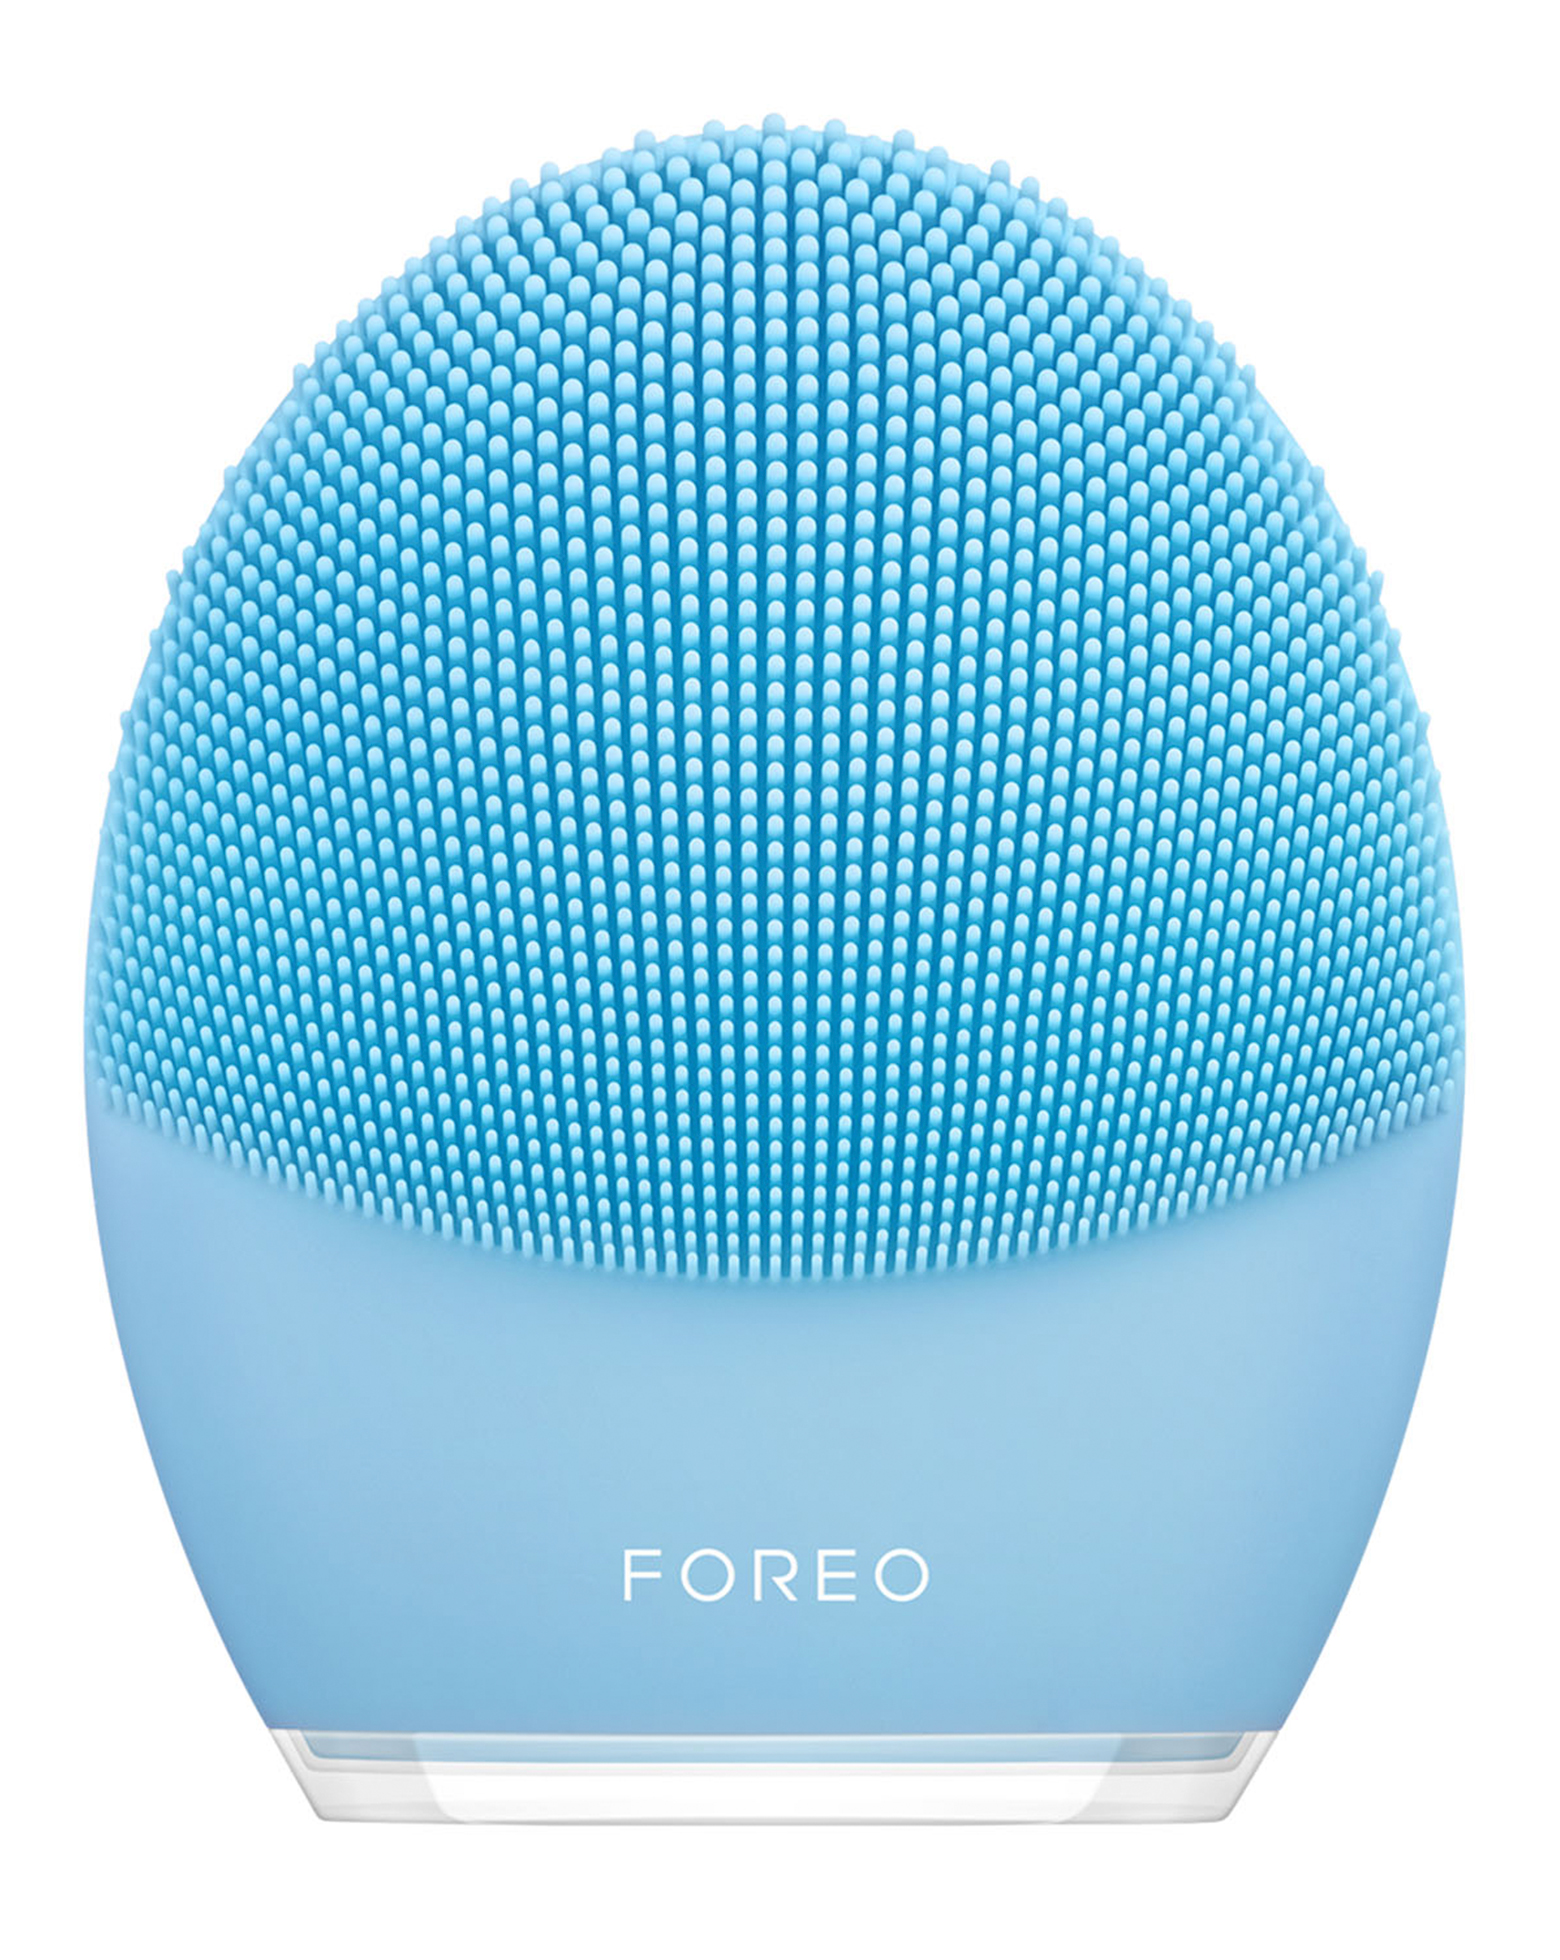 FOREO Just Launched This Exclusive With FabFitFun - FabFitFun |Foreo